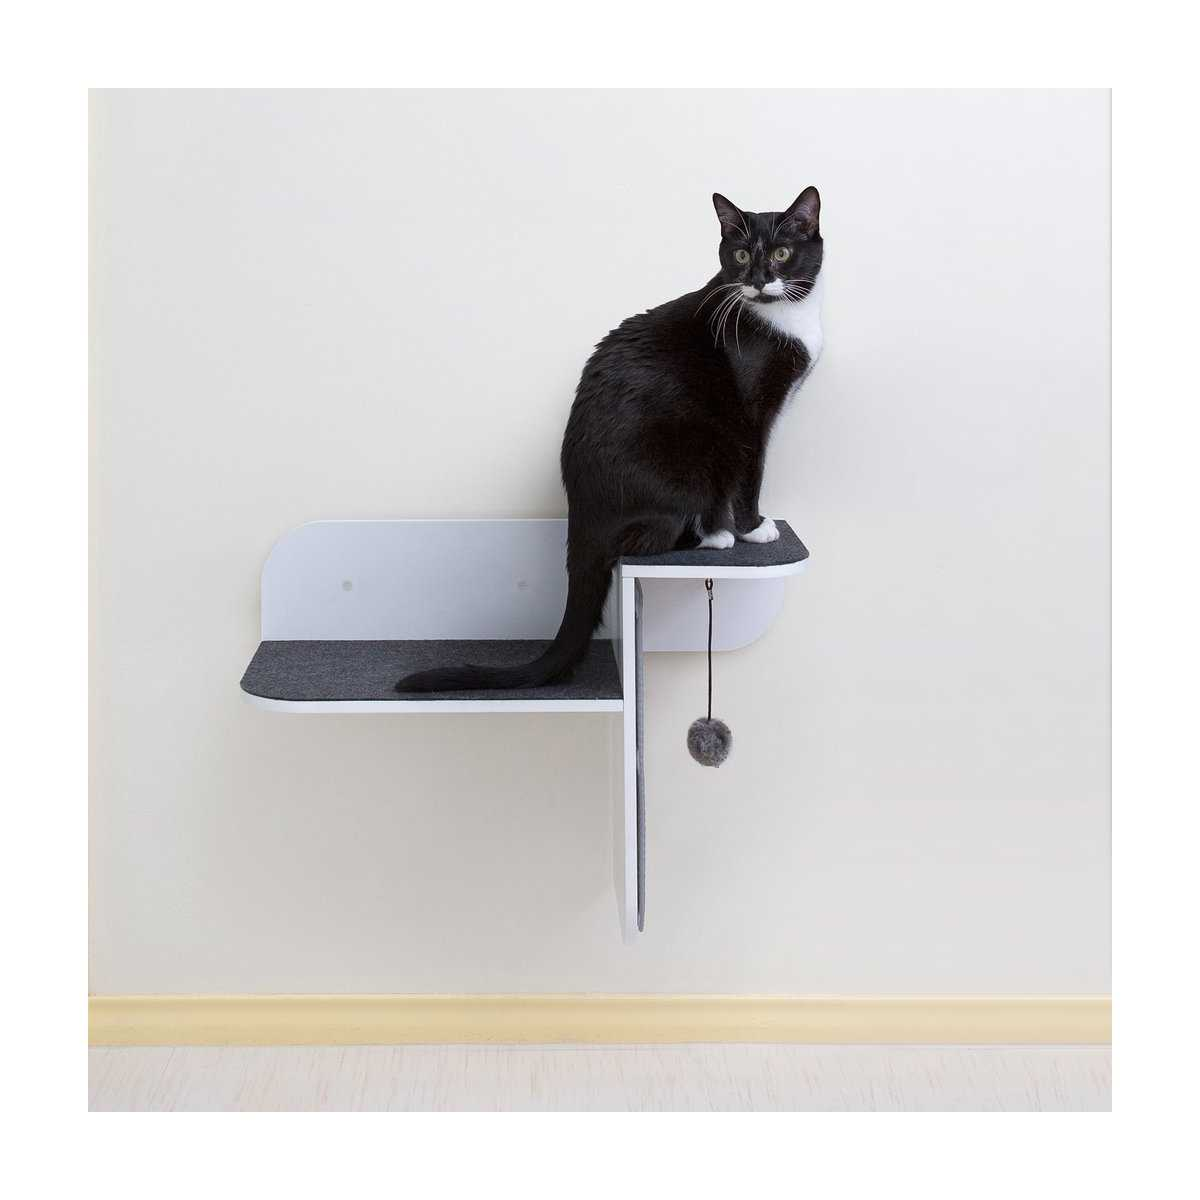 Step Perch Wall Mounted Cat Perch Scratcher Amp Lounge